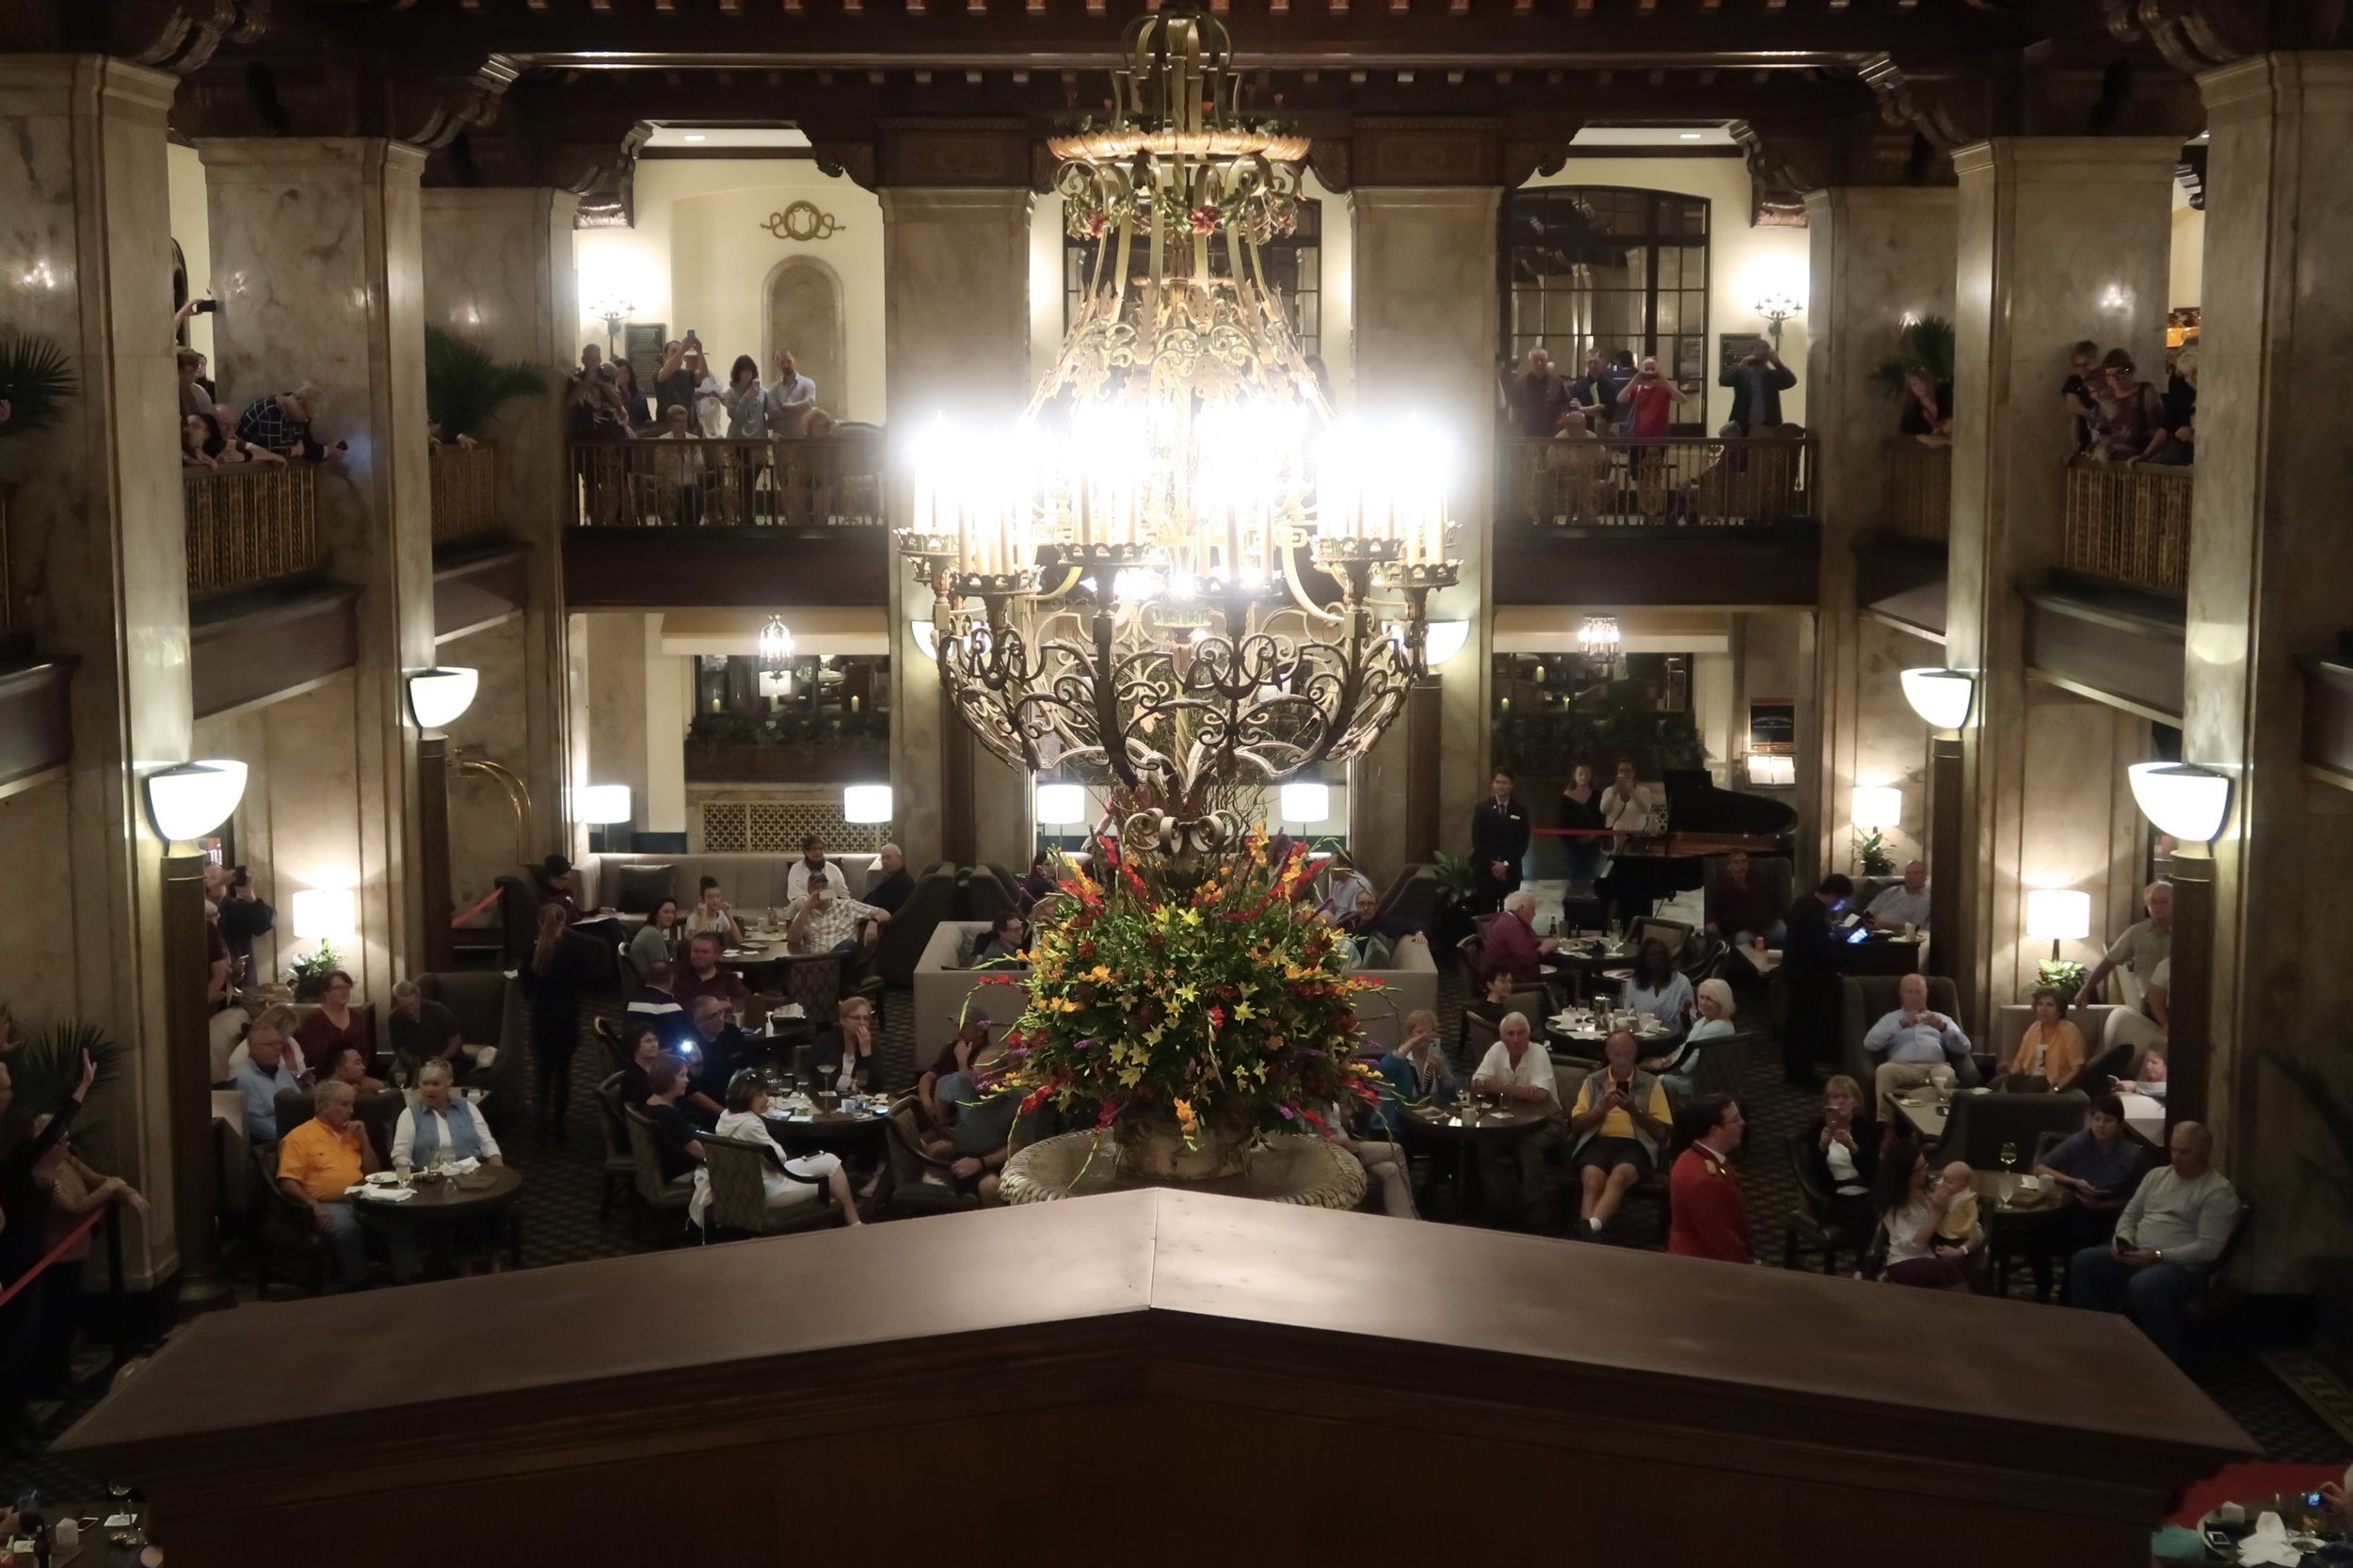 Hundreds of people ring the lobby fountain at the Peabody Hotel, sipping their beverages of choice as they wait for the Duck Parade to begin.